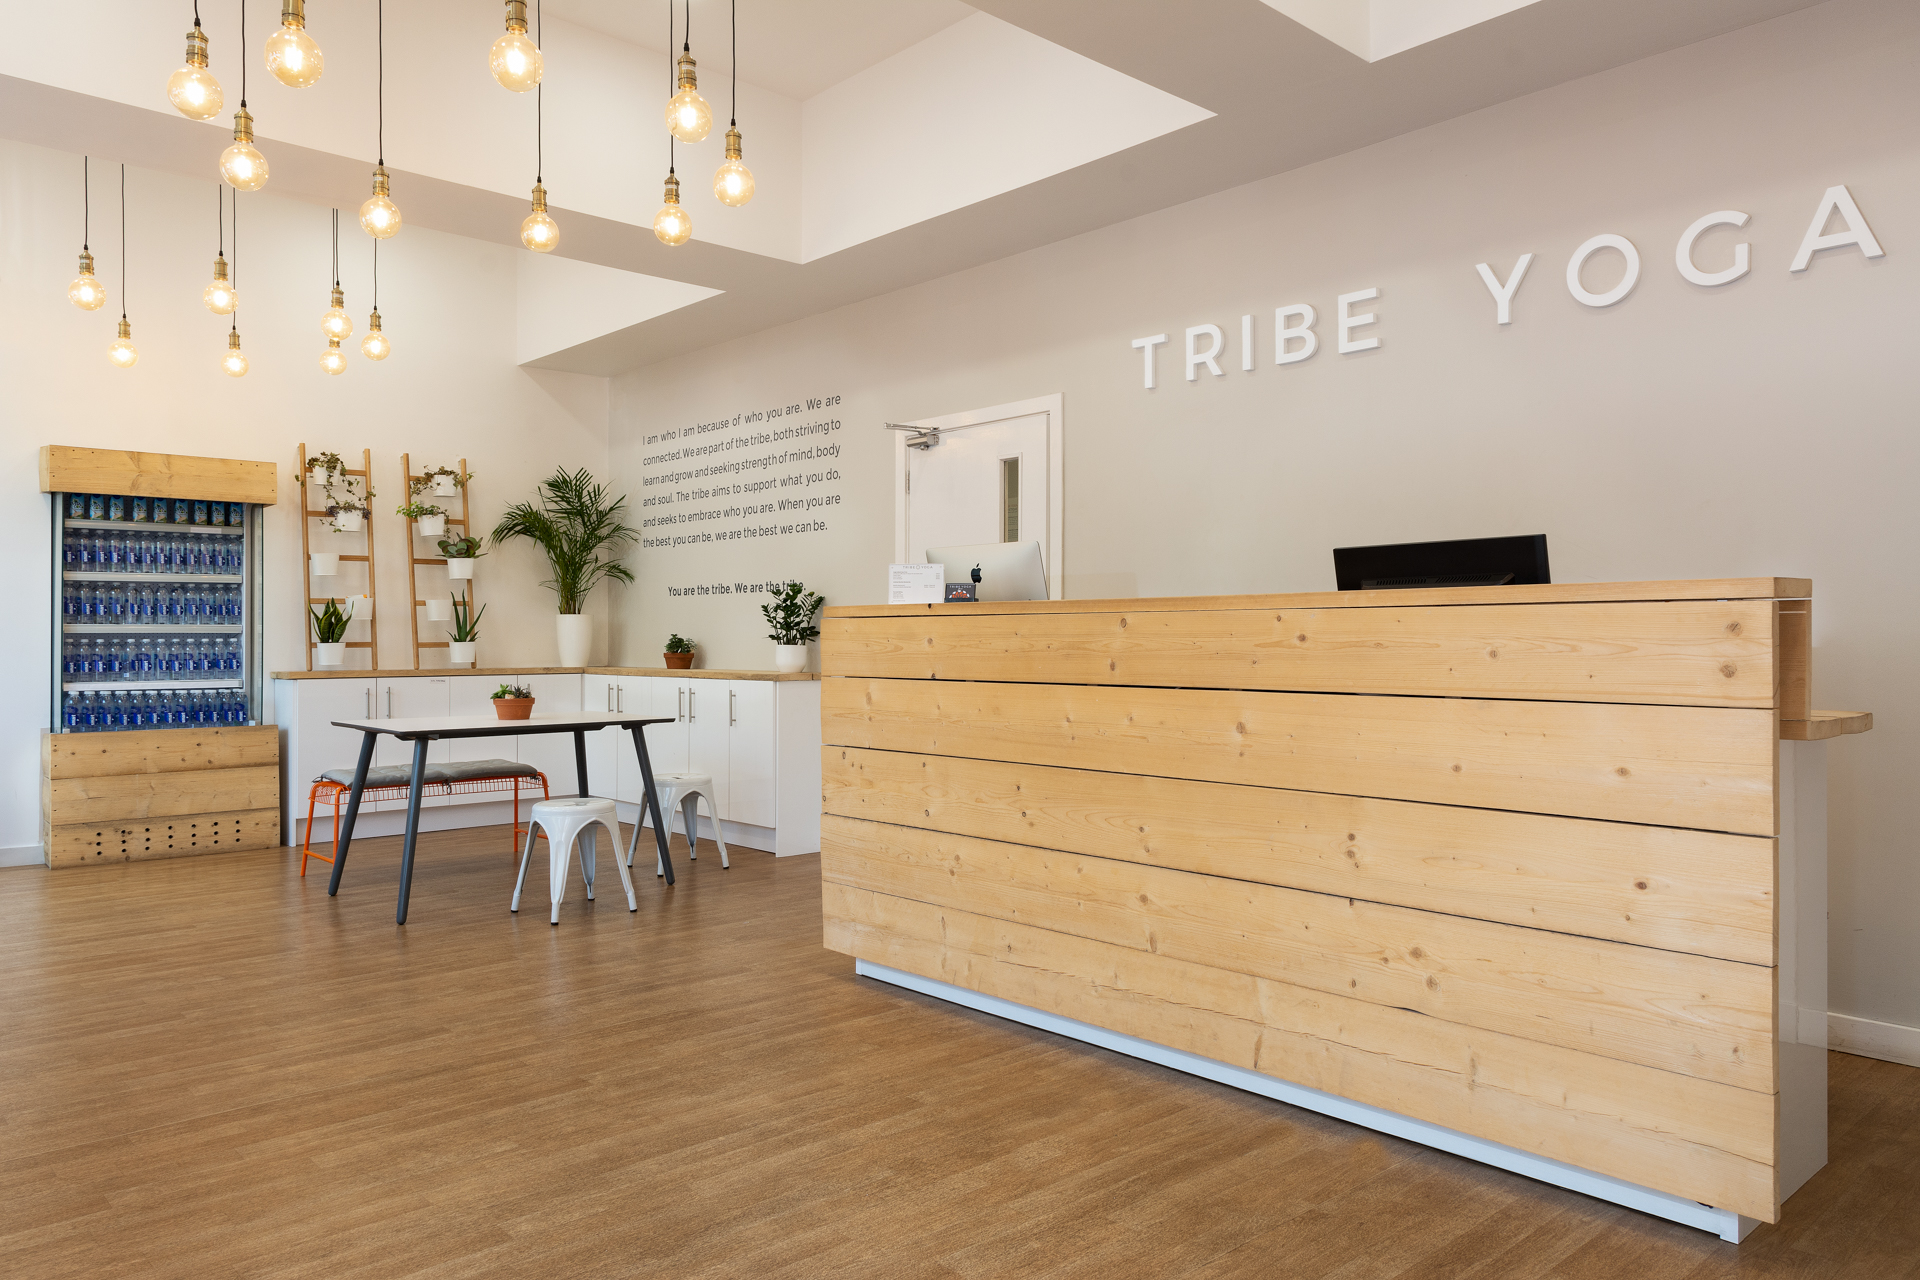 Tribe Yoga Leith Walk Edinburgh